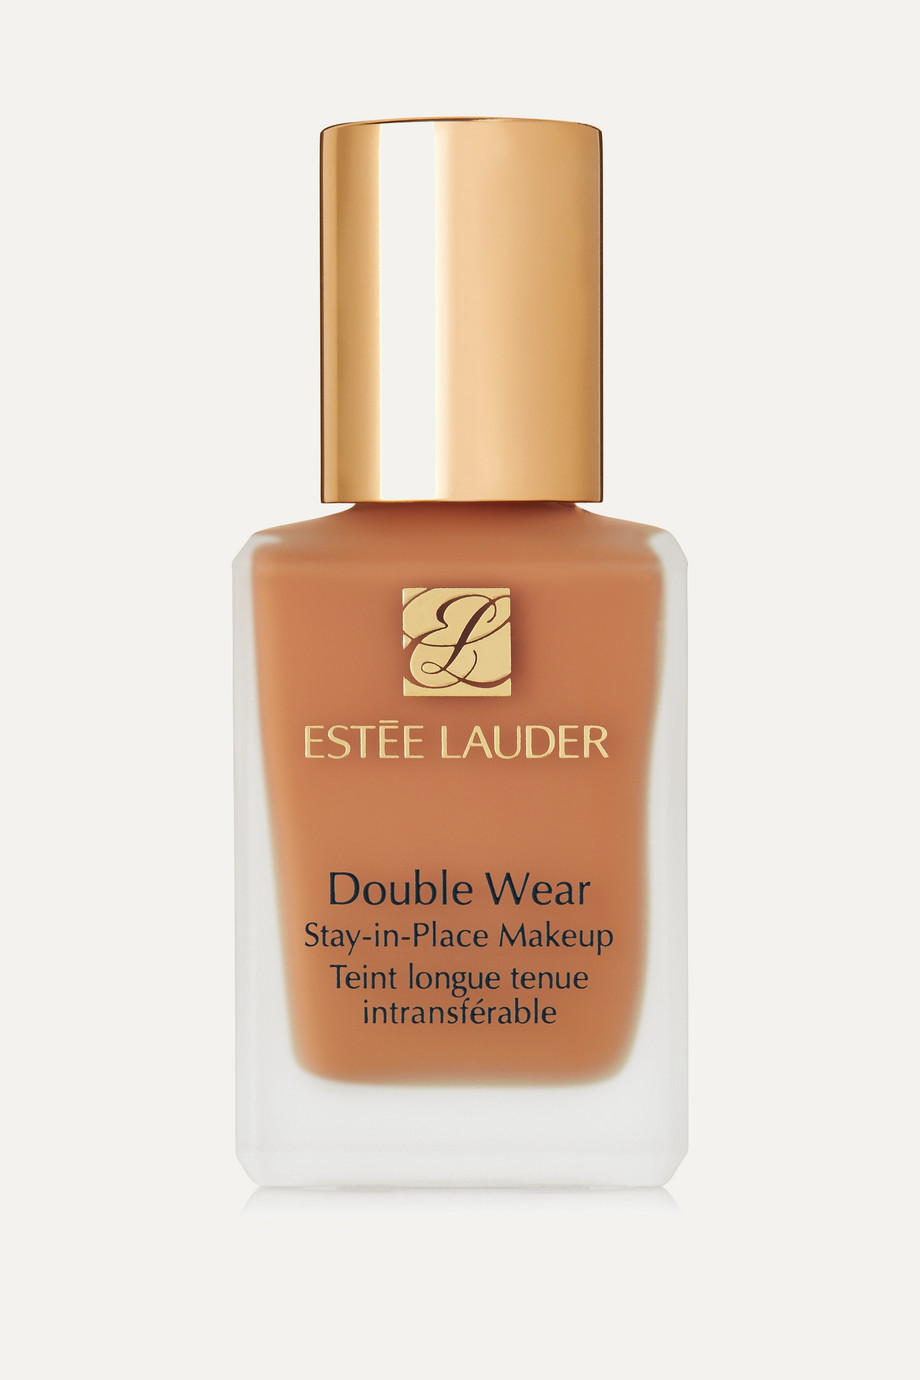 Estée Lauder Double Wear Stay-in-Place Makeup – Tawny 3W1 – Foundation